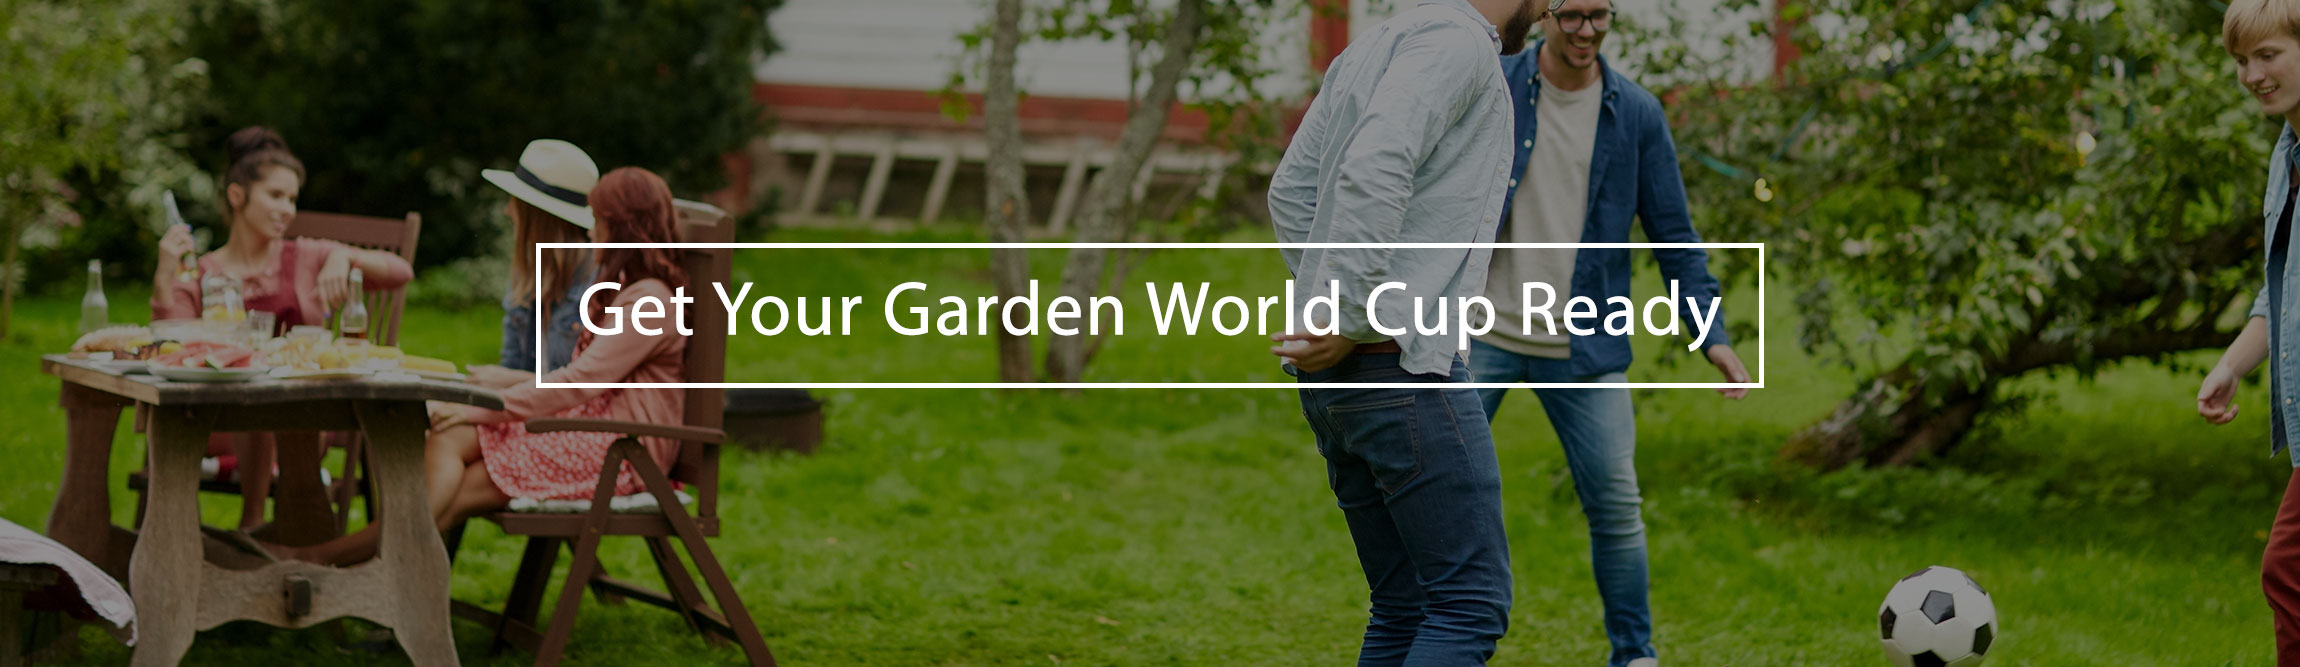 get your garden world cup ready